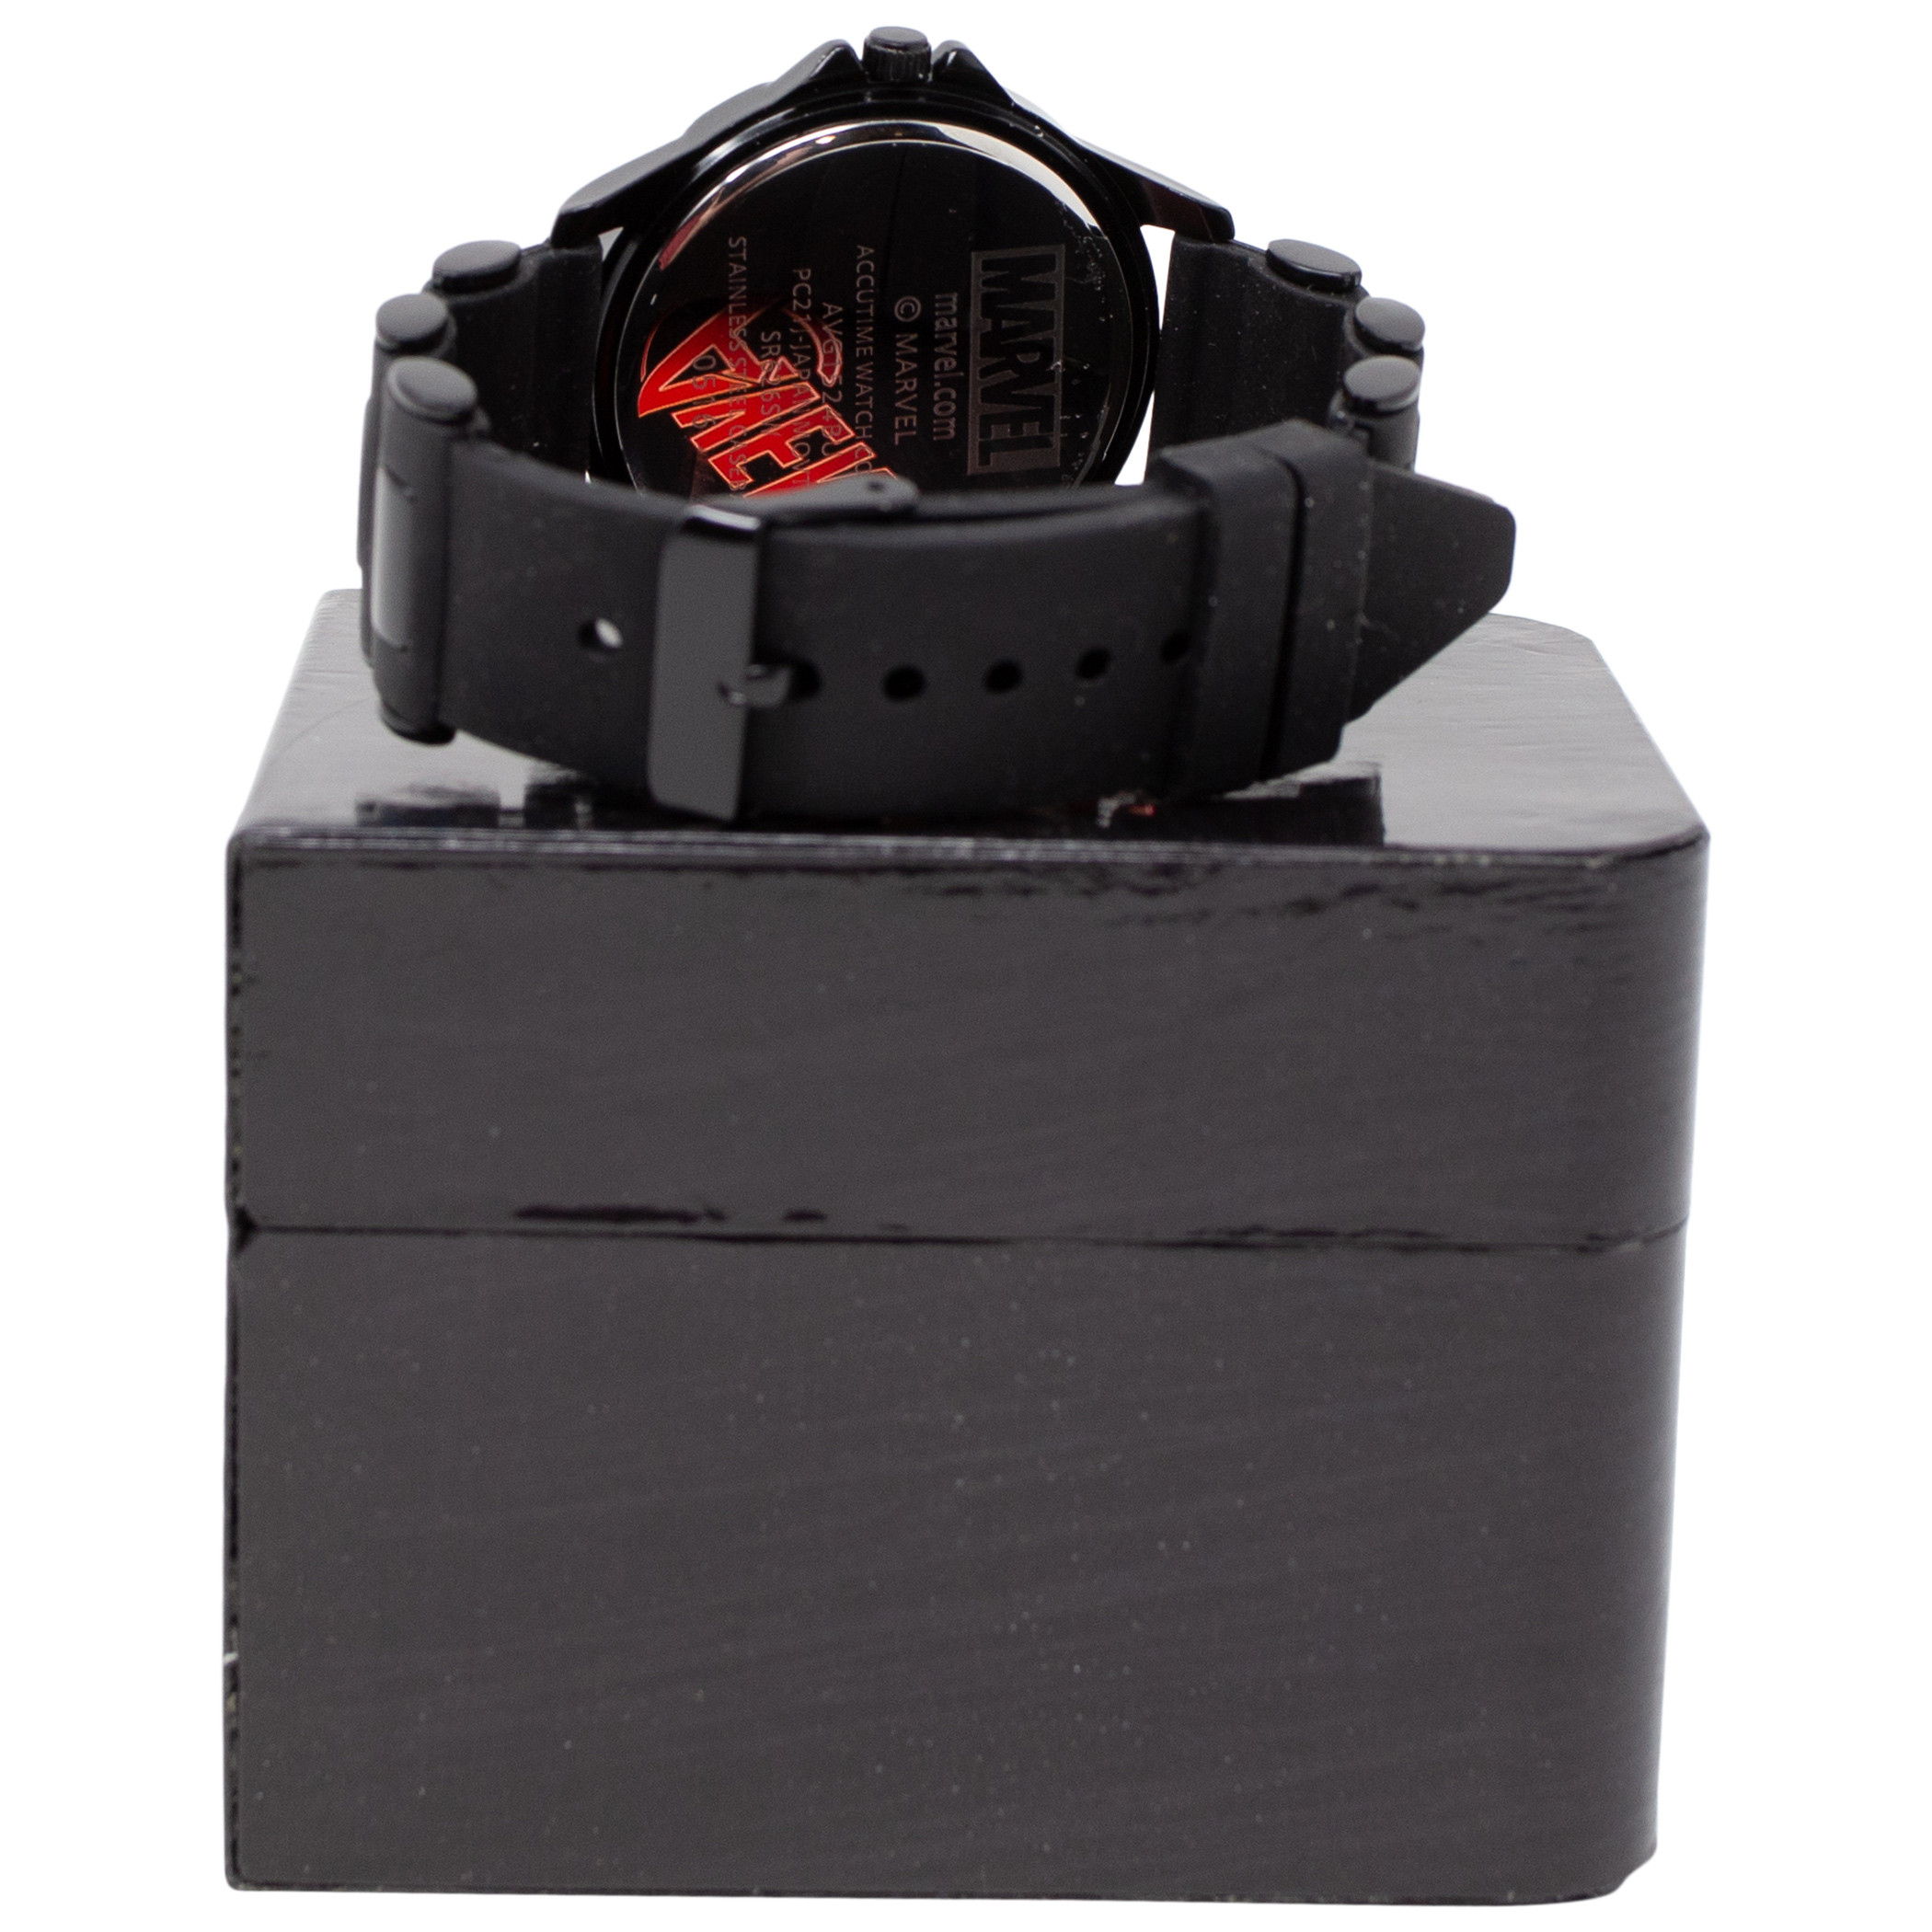 Avengers Silver Symbol Watch with Rubber Wristband